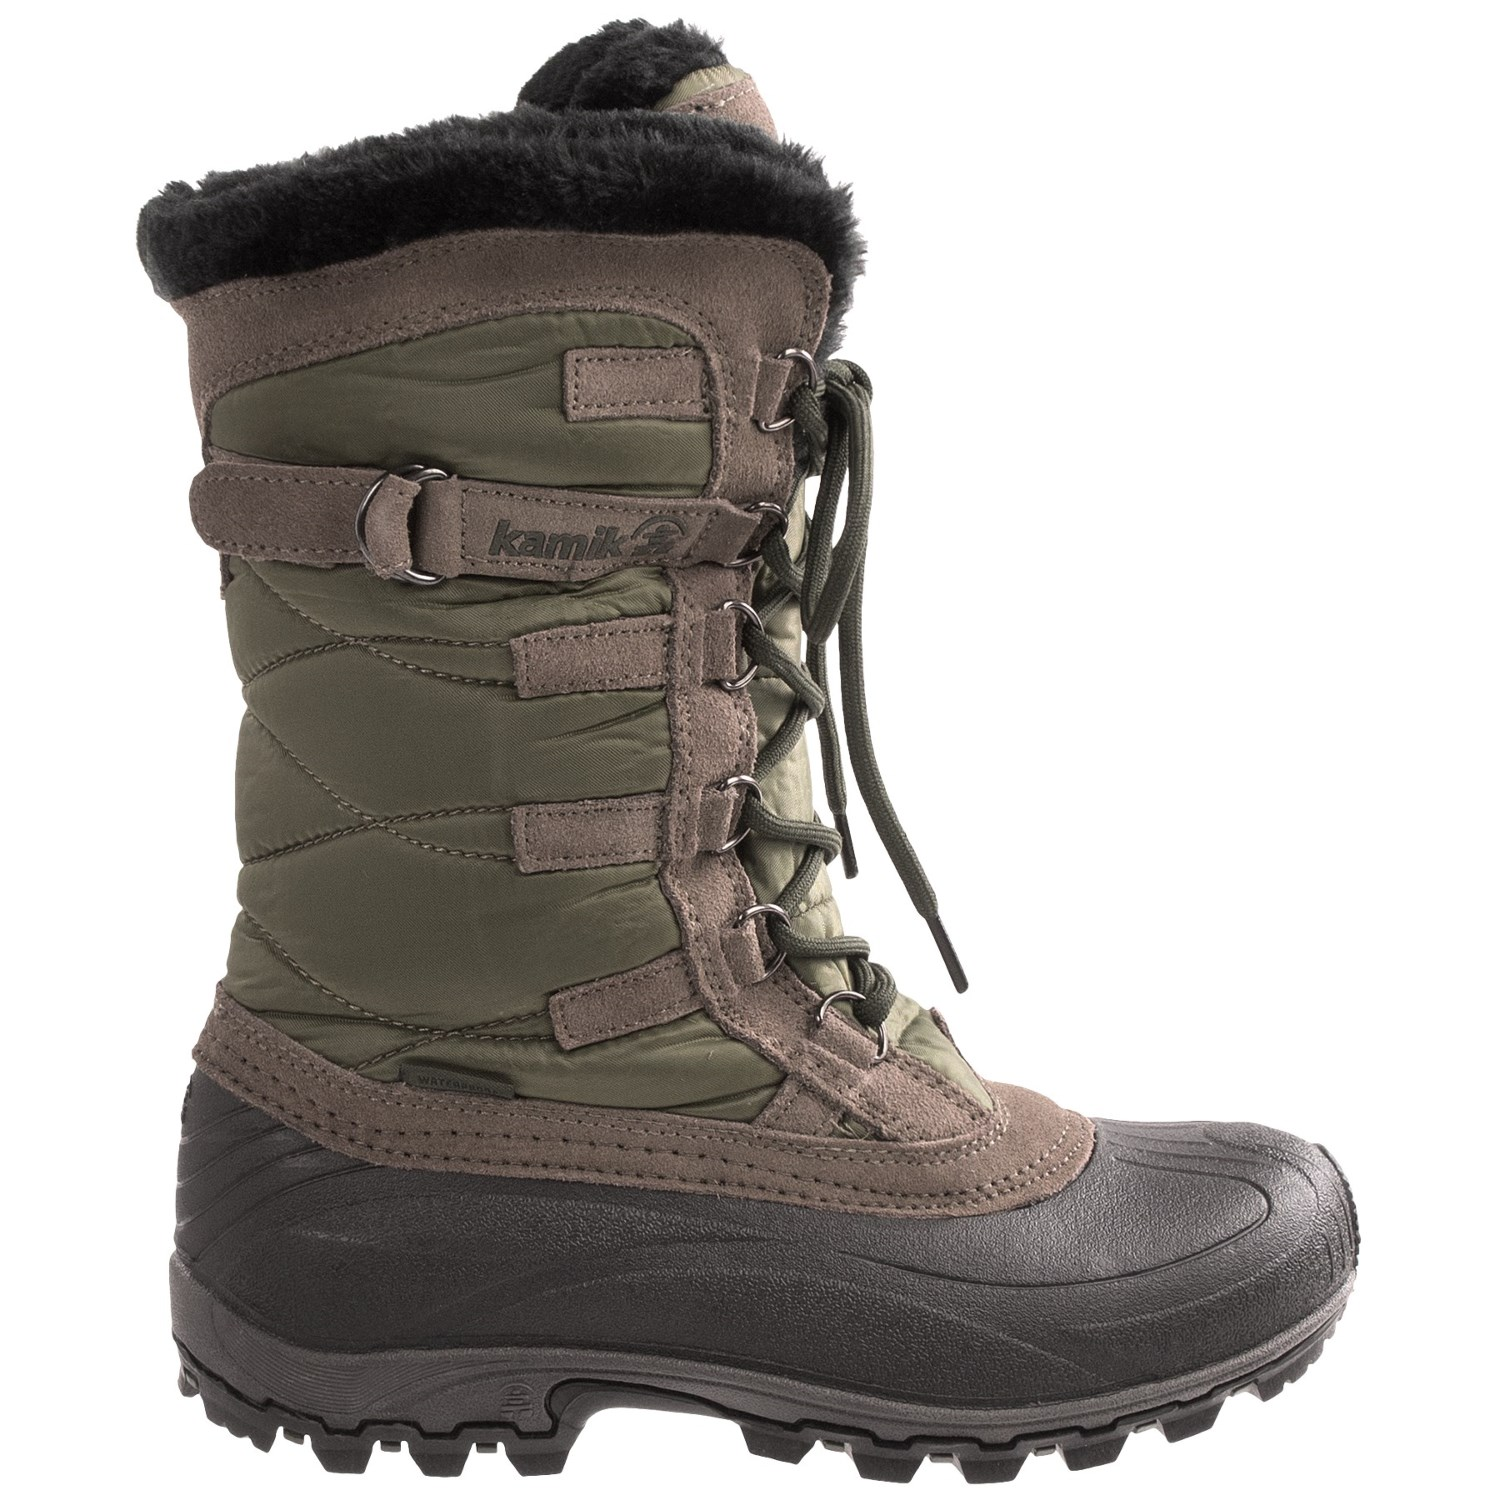 Kamik Snowvalley Winter Snow Boots (For Women) 8634N